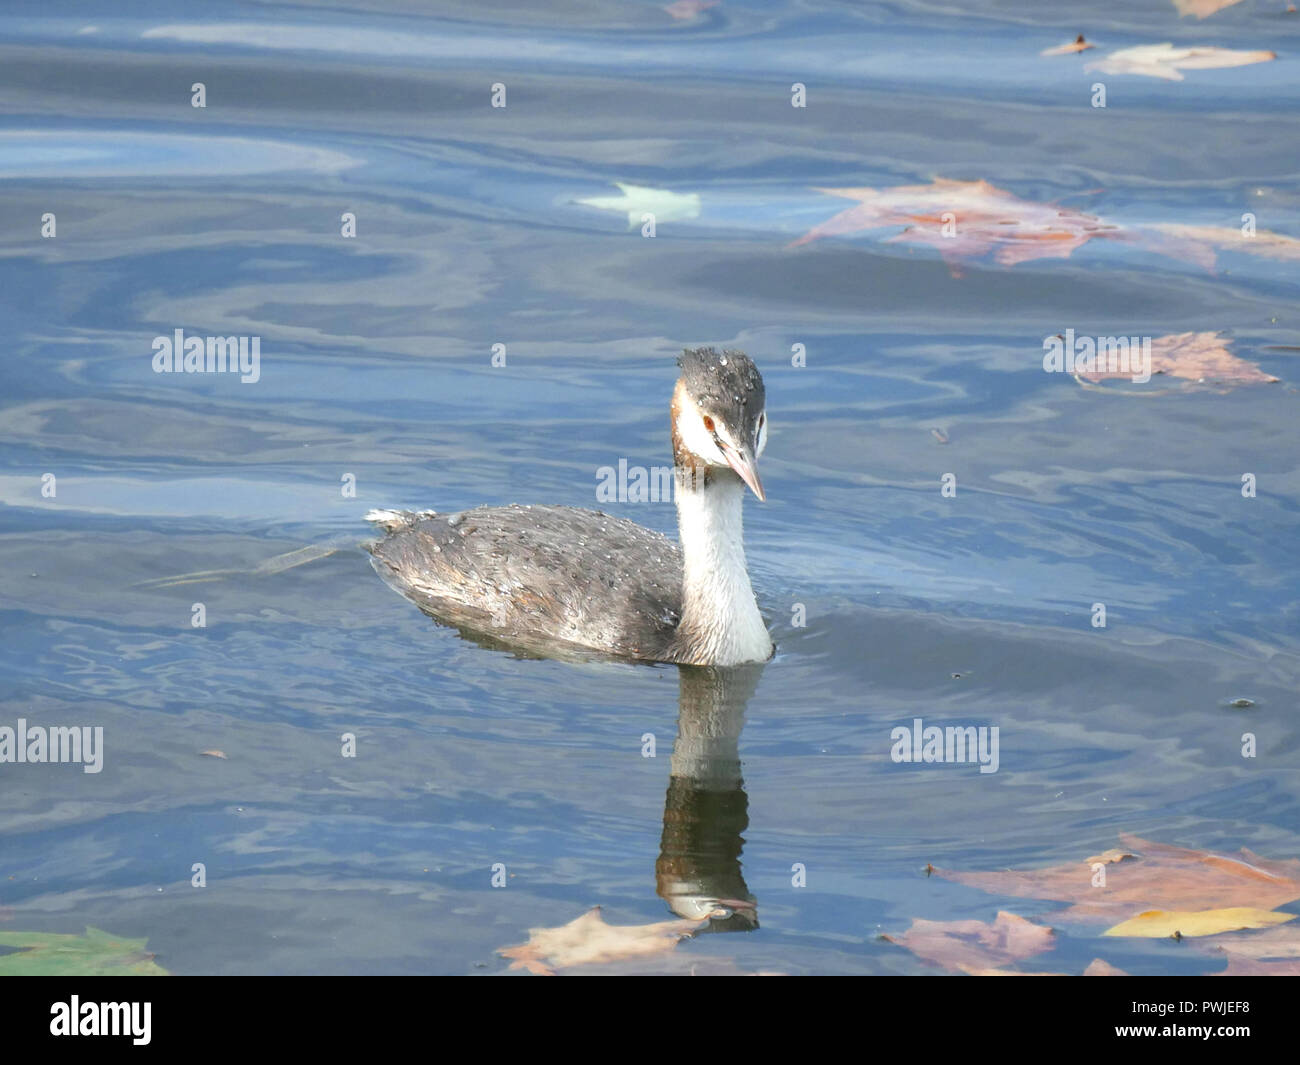 Great crested grebe - Podiceps cristatus - Stock Image